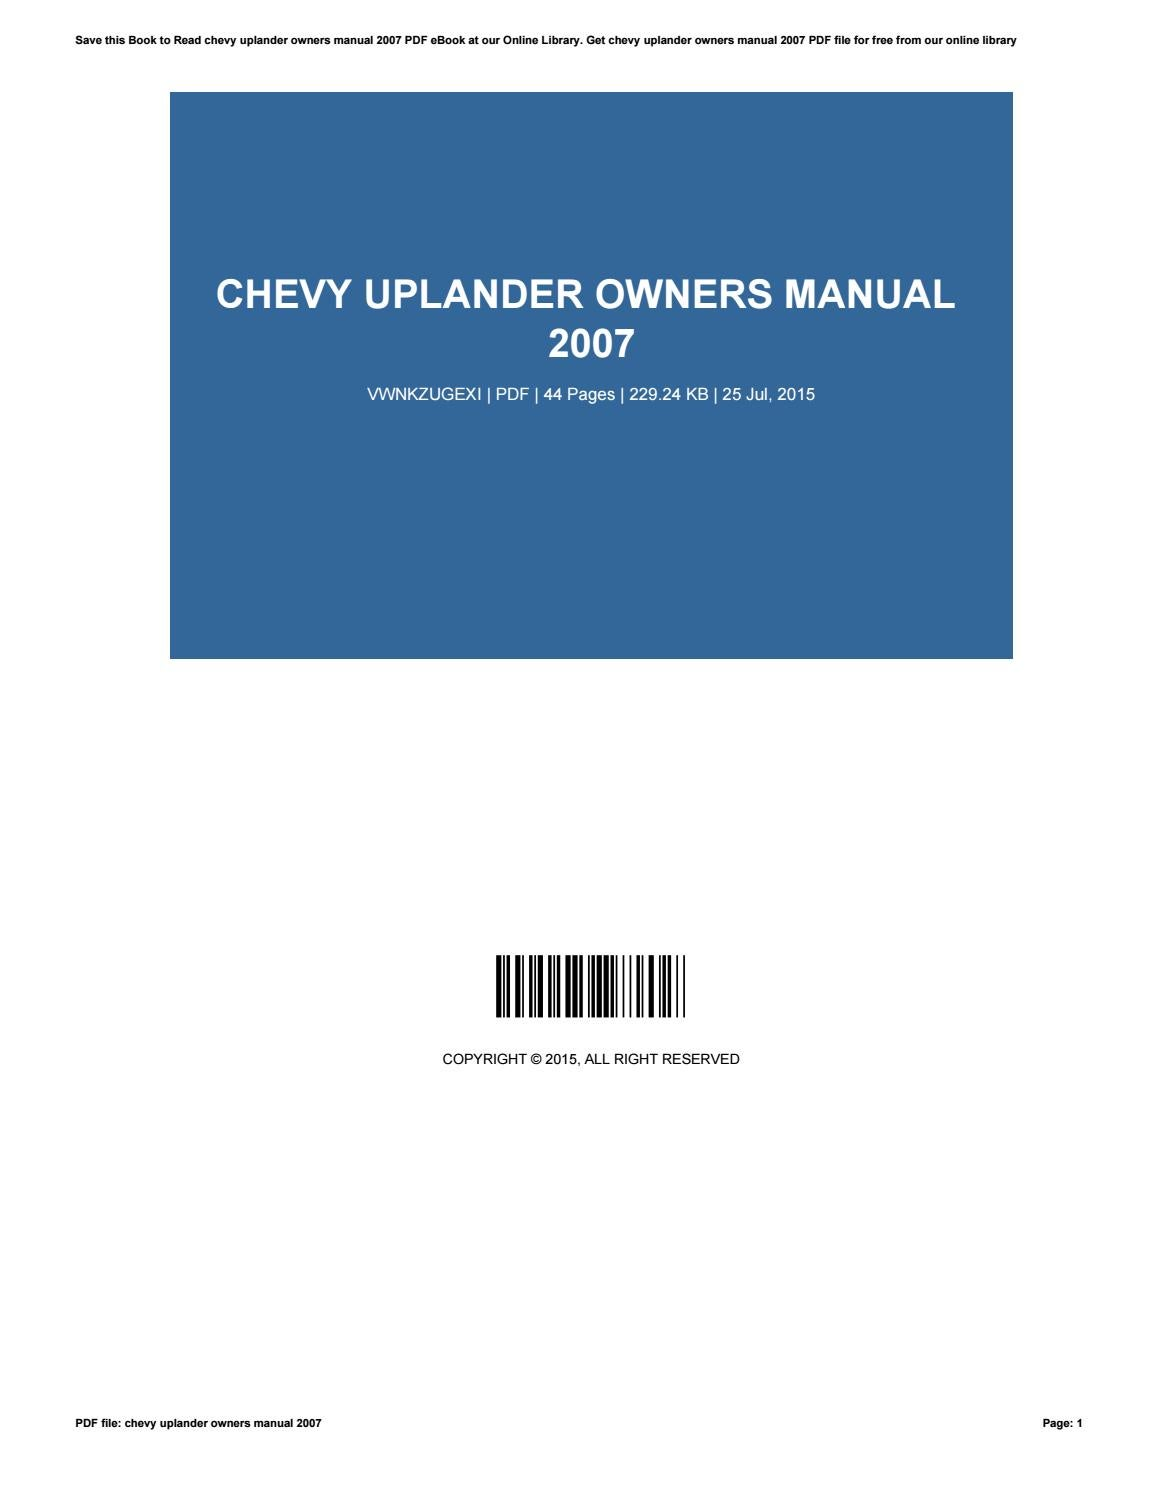 chevy uplander owners manual 2007 by millicentbraden1249 issuu rh issuu com 2008 chevy uplander lt owners manual 2008 chevrolet uplander owners manual